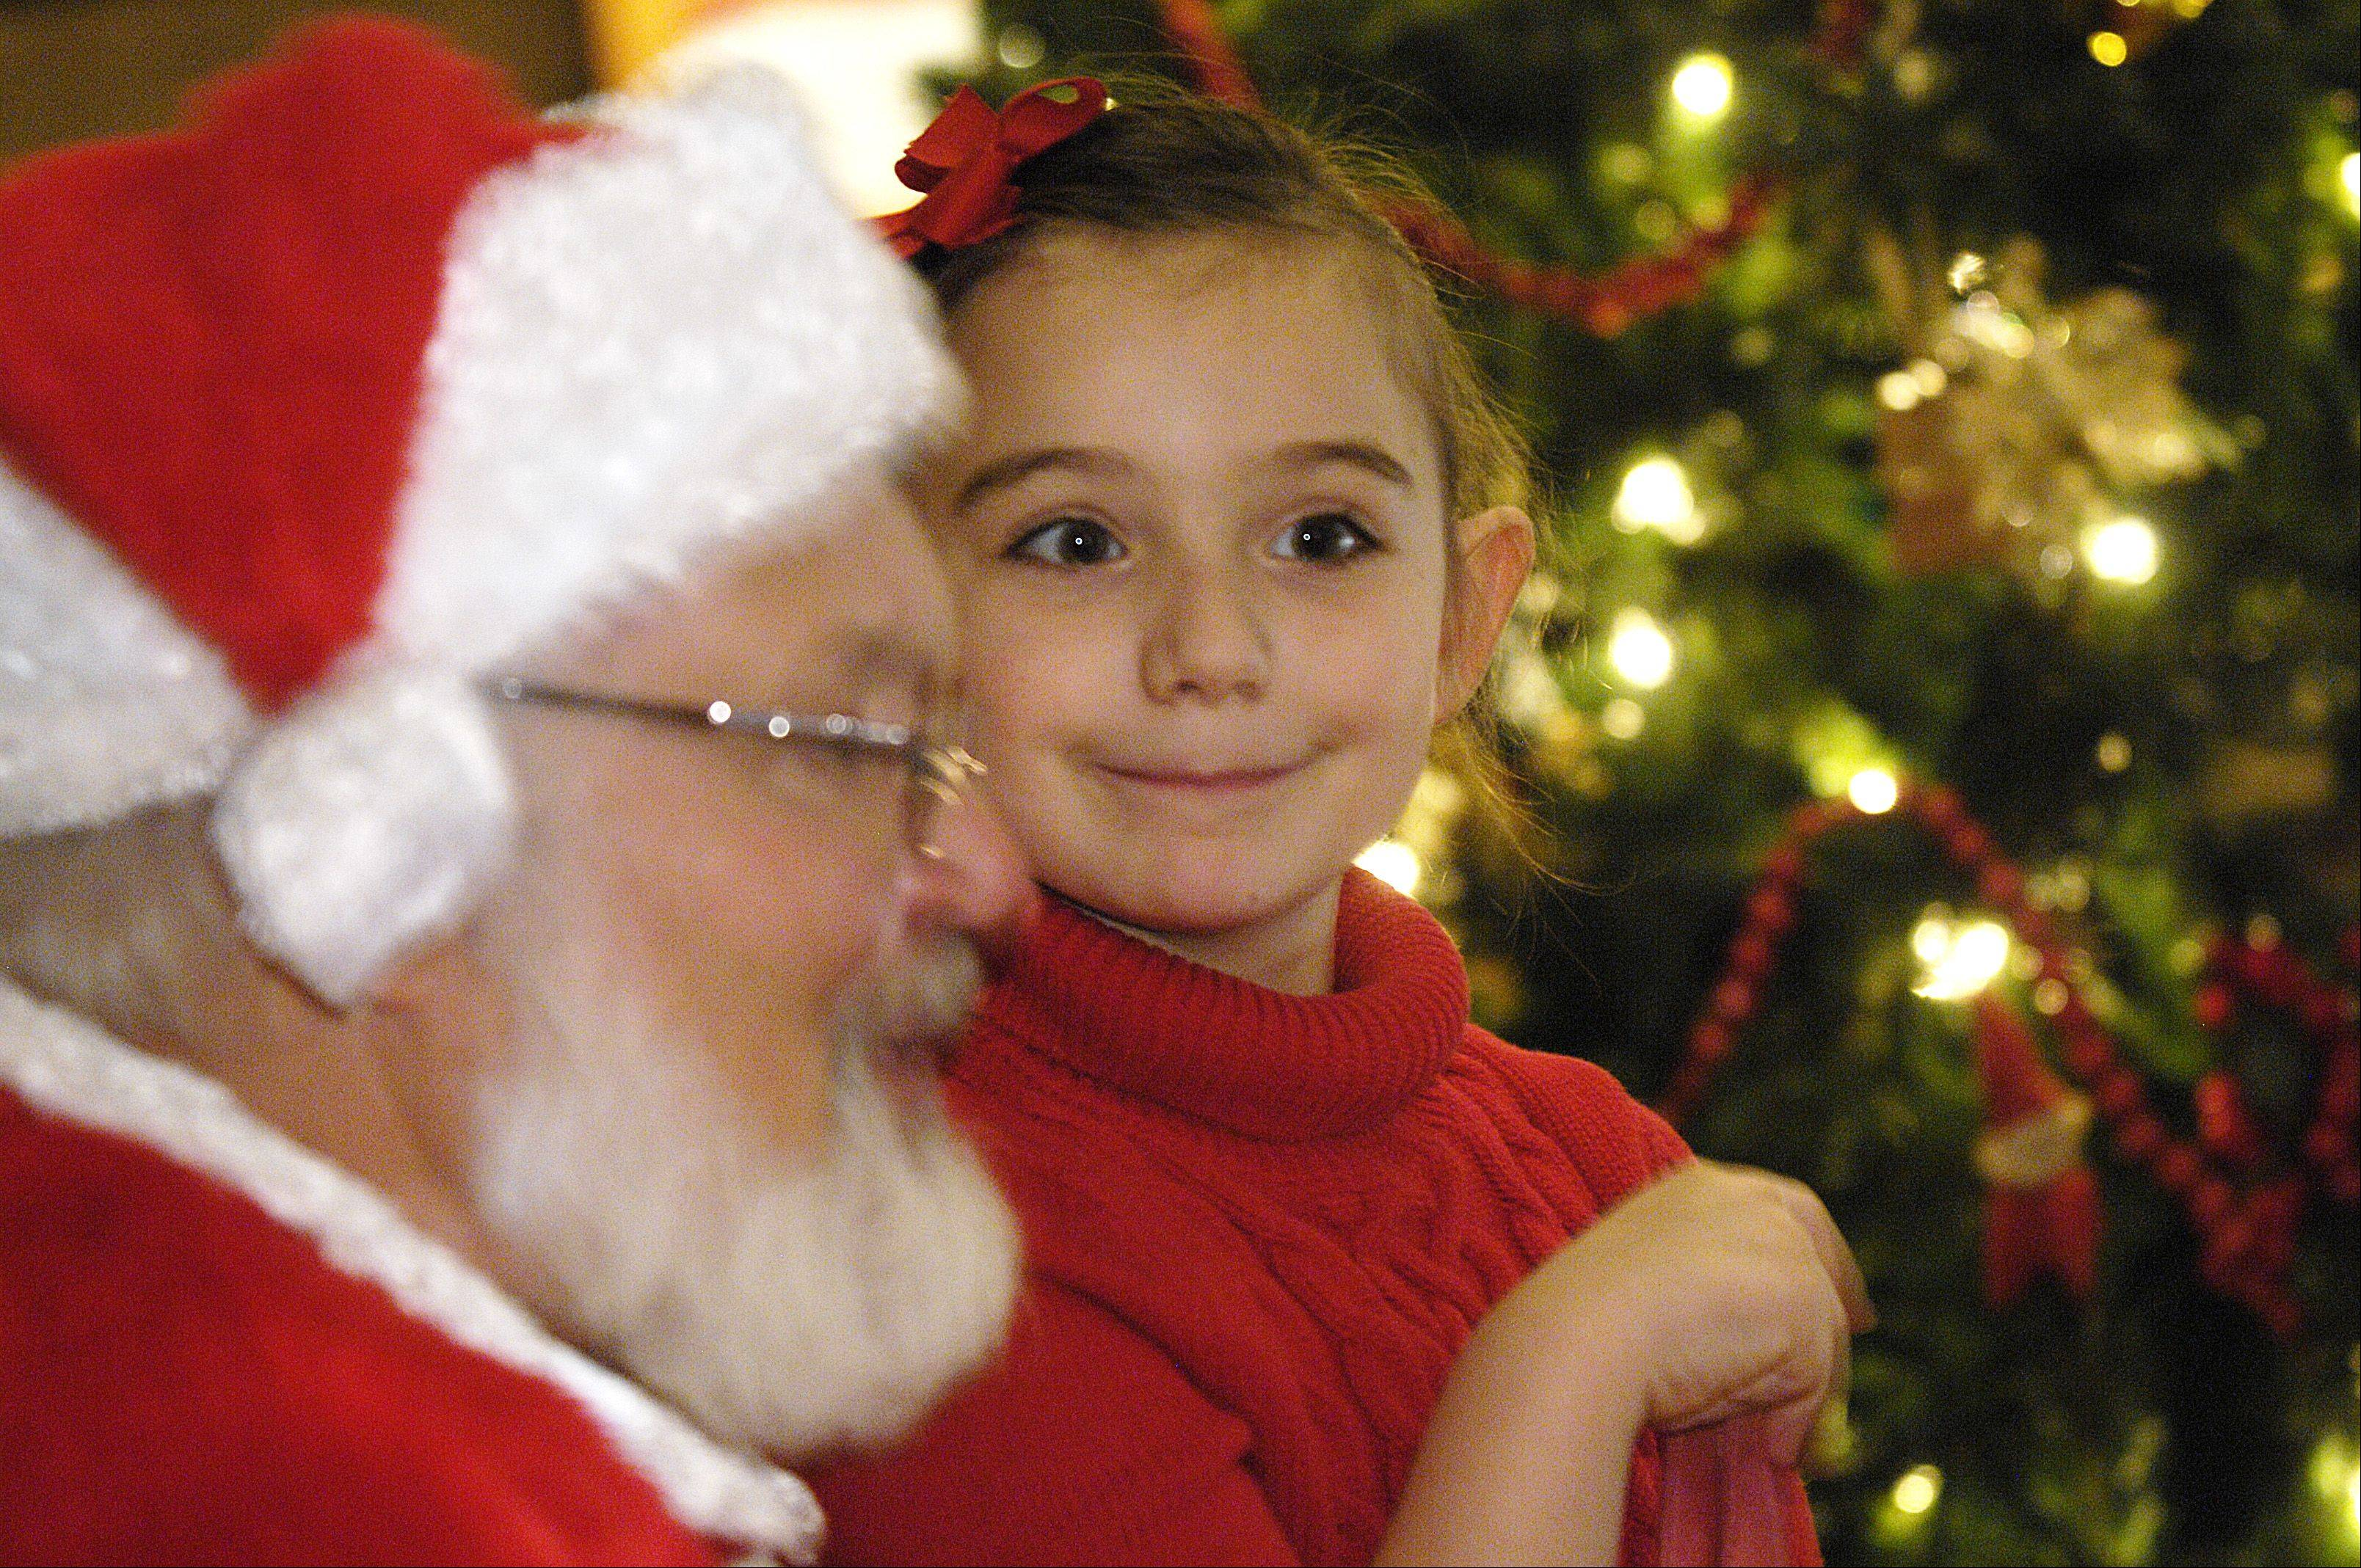 Claire Weissenth, 6, of Geneva, visits with Santa during Lisle's Once Upon a Christmas celebration Sunday at Lisle Station Park.